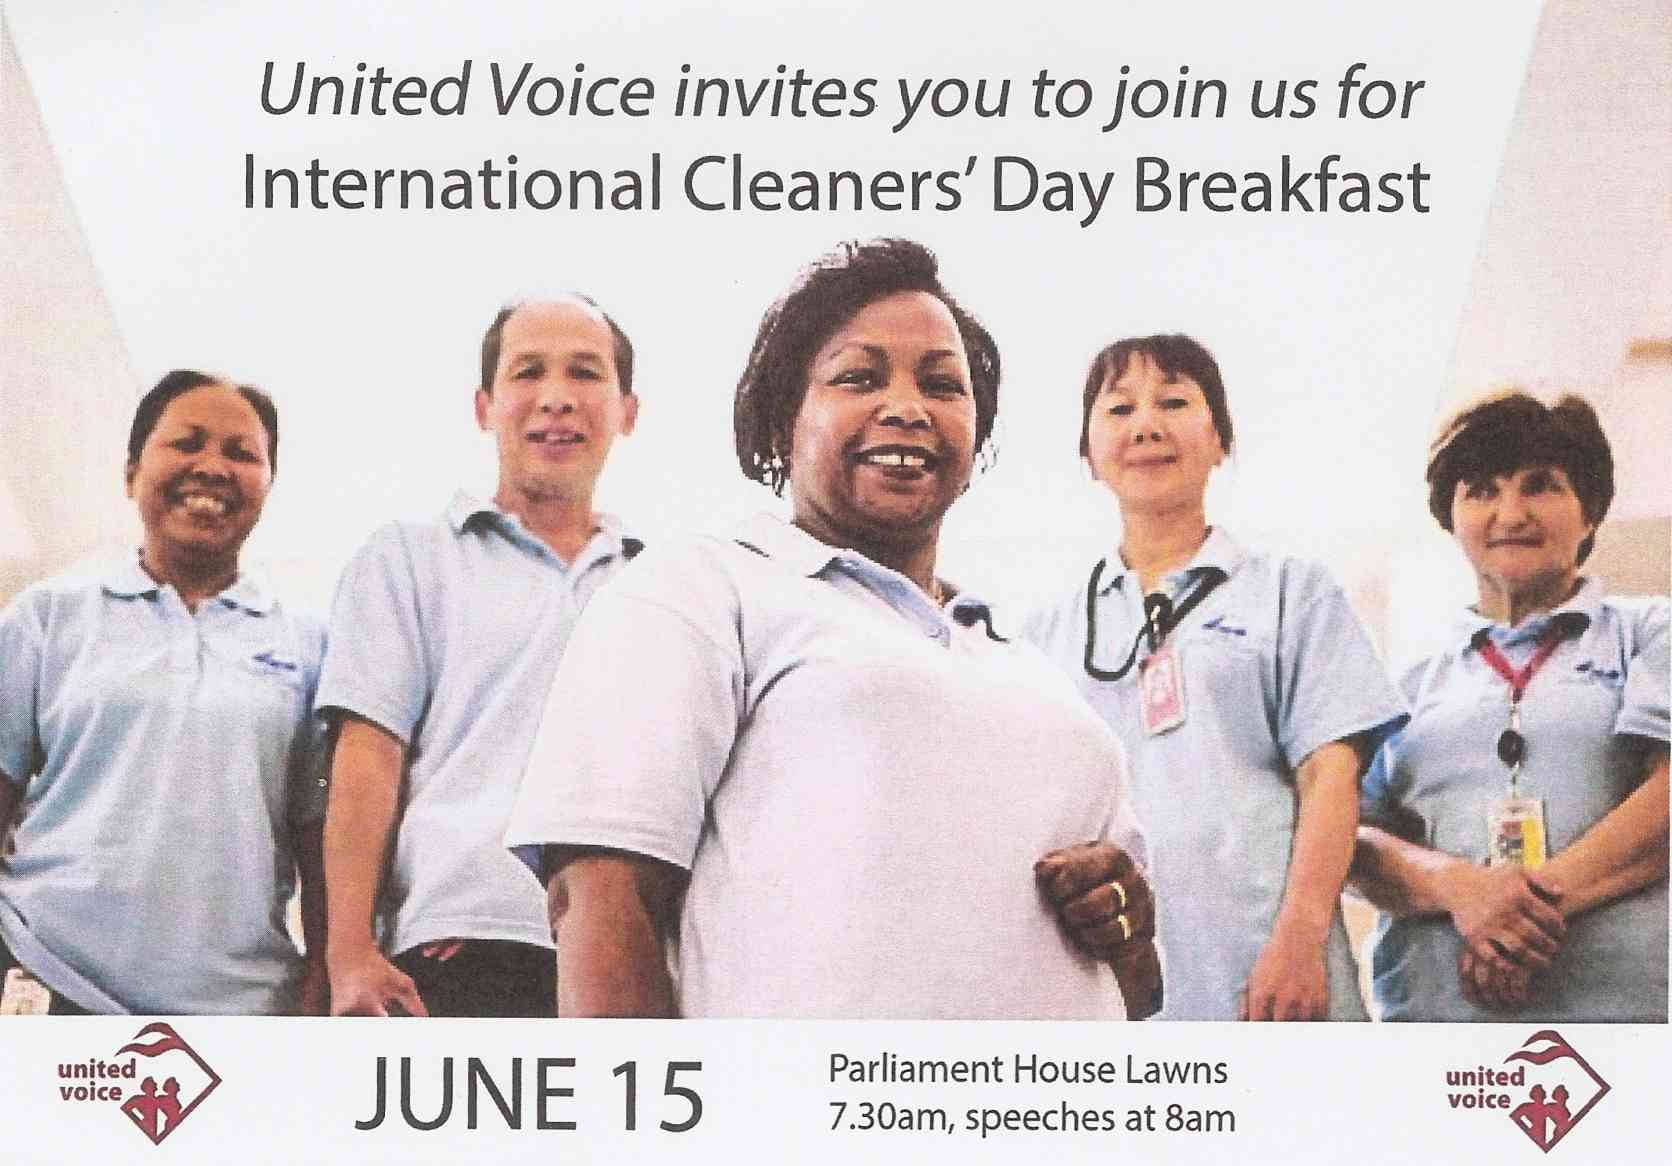 2015-6_United_Voice_Cleaners_Day.jpg